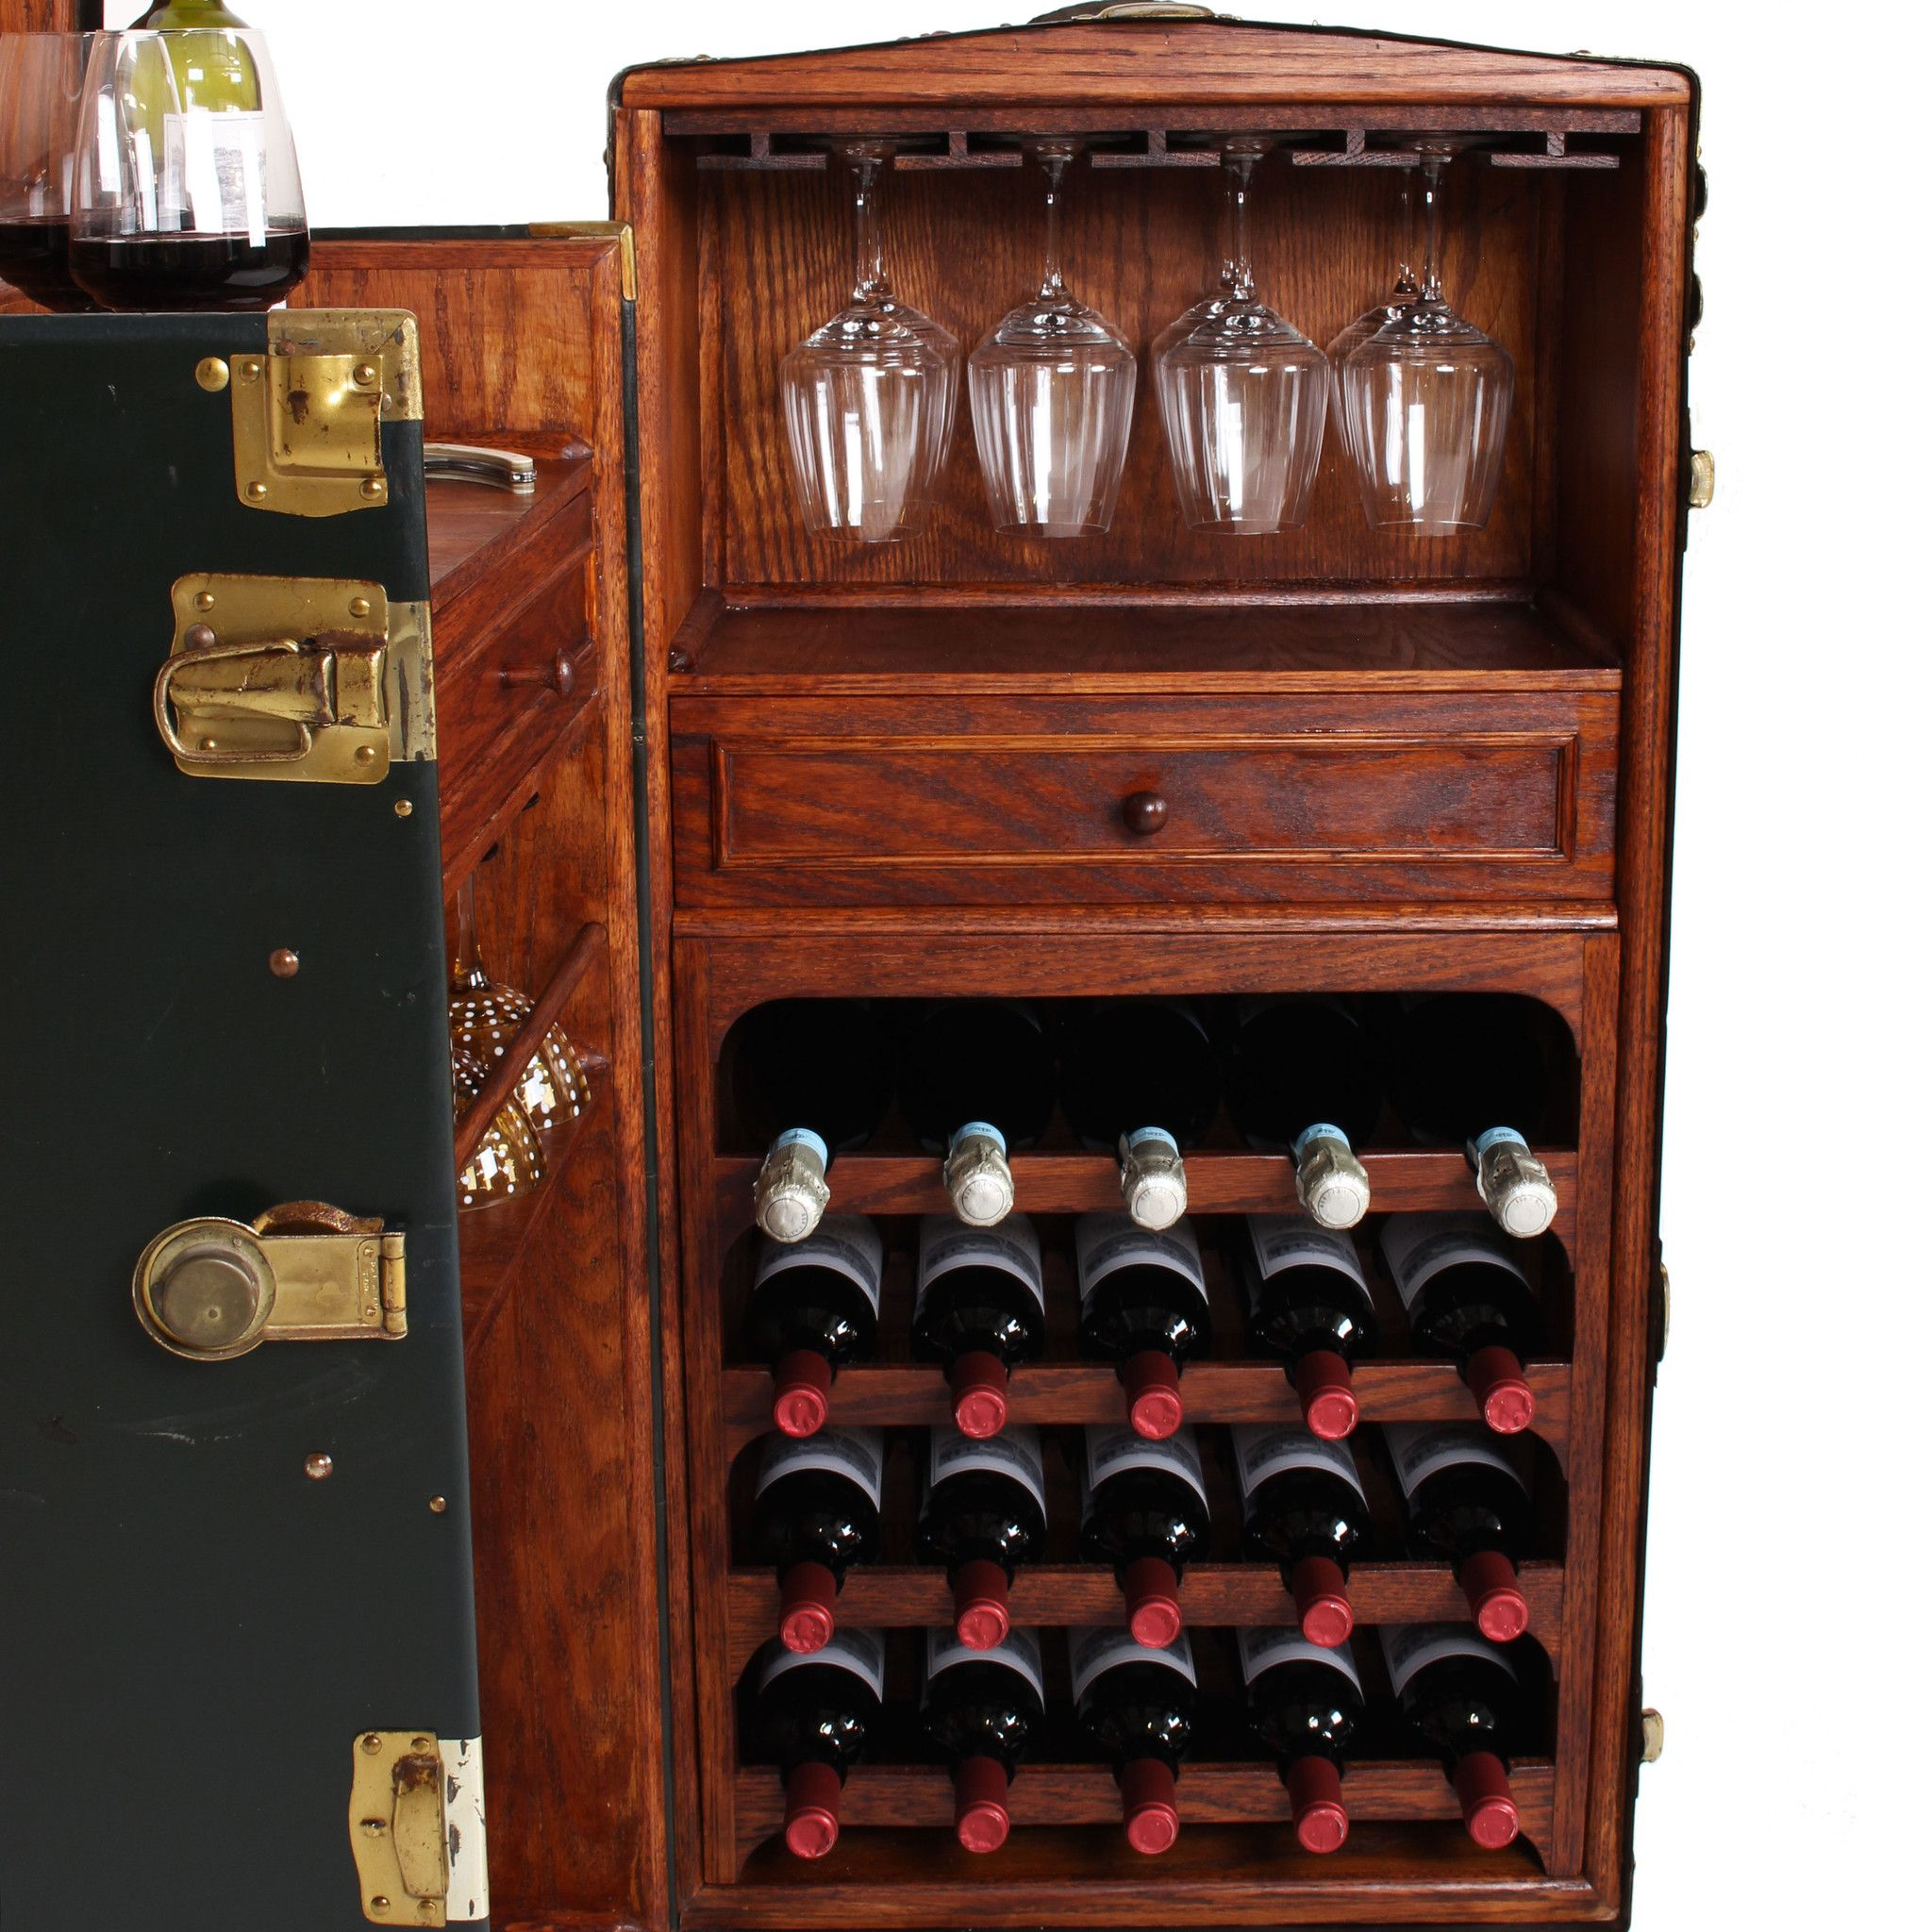 Vintage Steamer Trunk Bar Cabinet Fatto A Mano Antiques 5